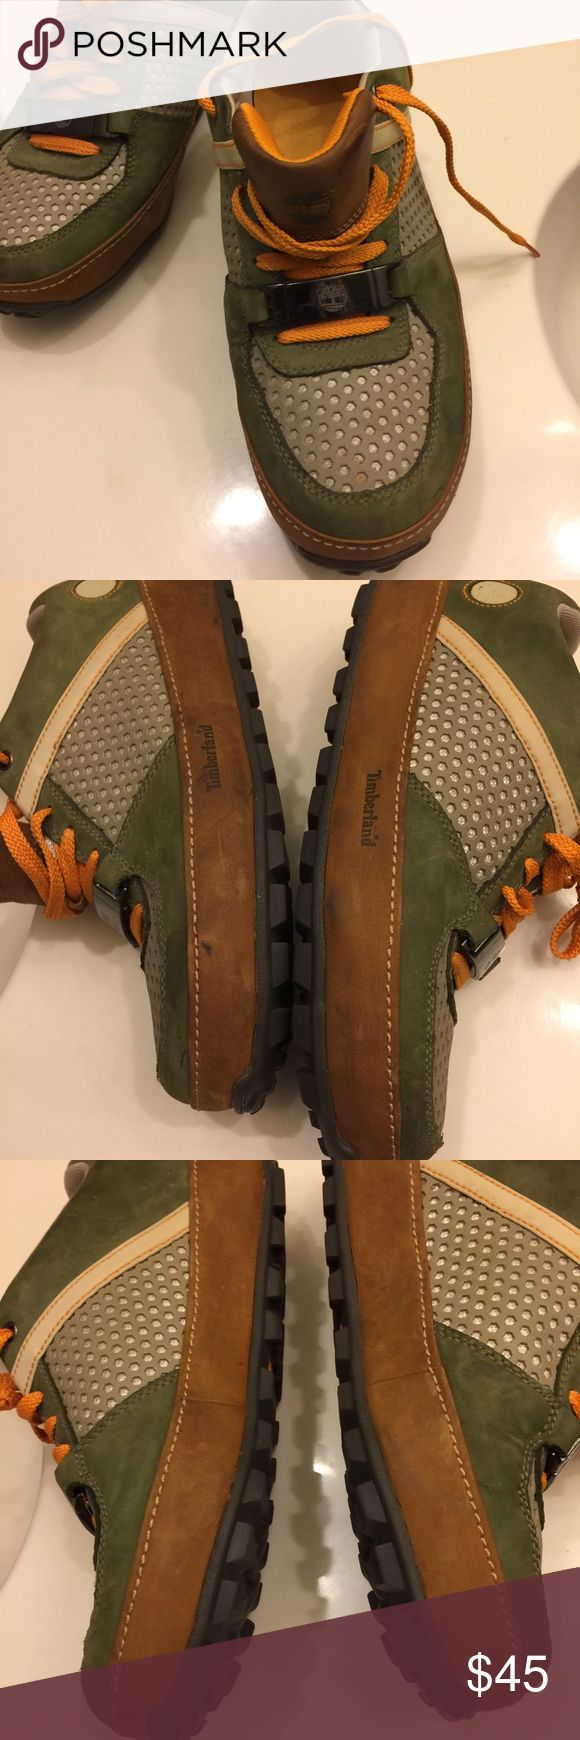 Timberland Trainers Genuine Leather Timberland Trainers in excellent preowned condition.                                                      Size:10.5 M Timberland Shoes Sneakers